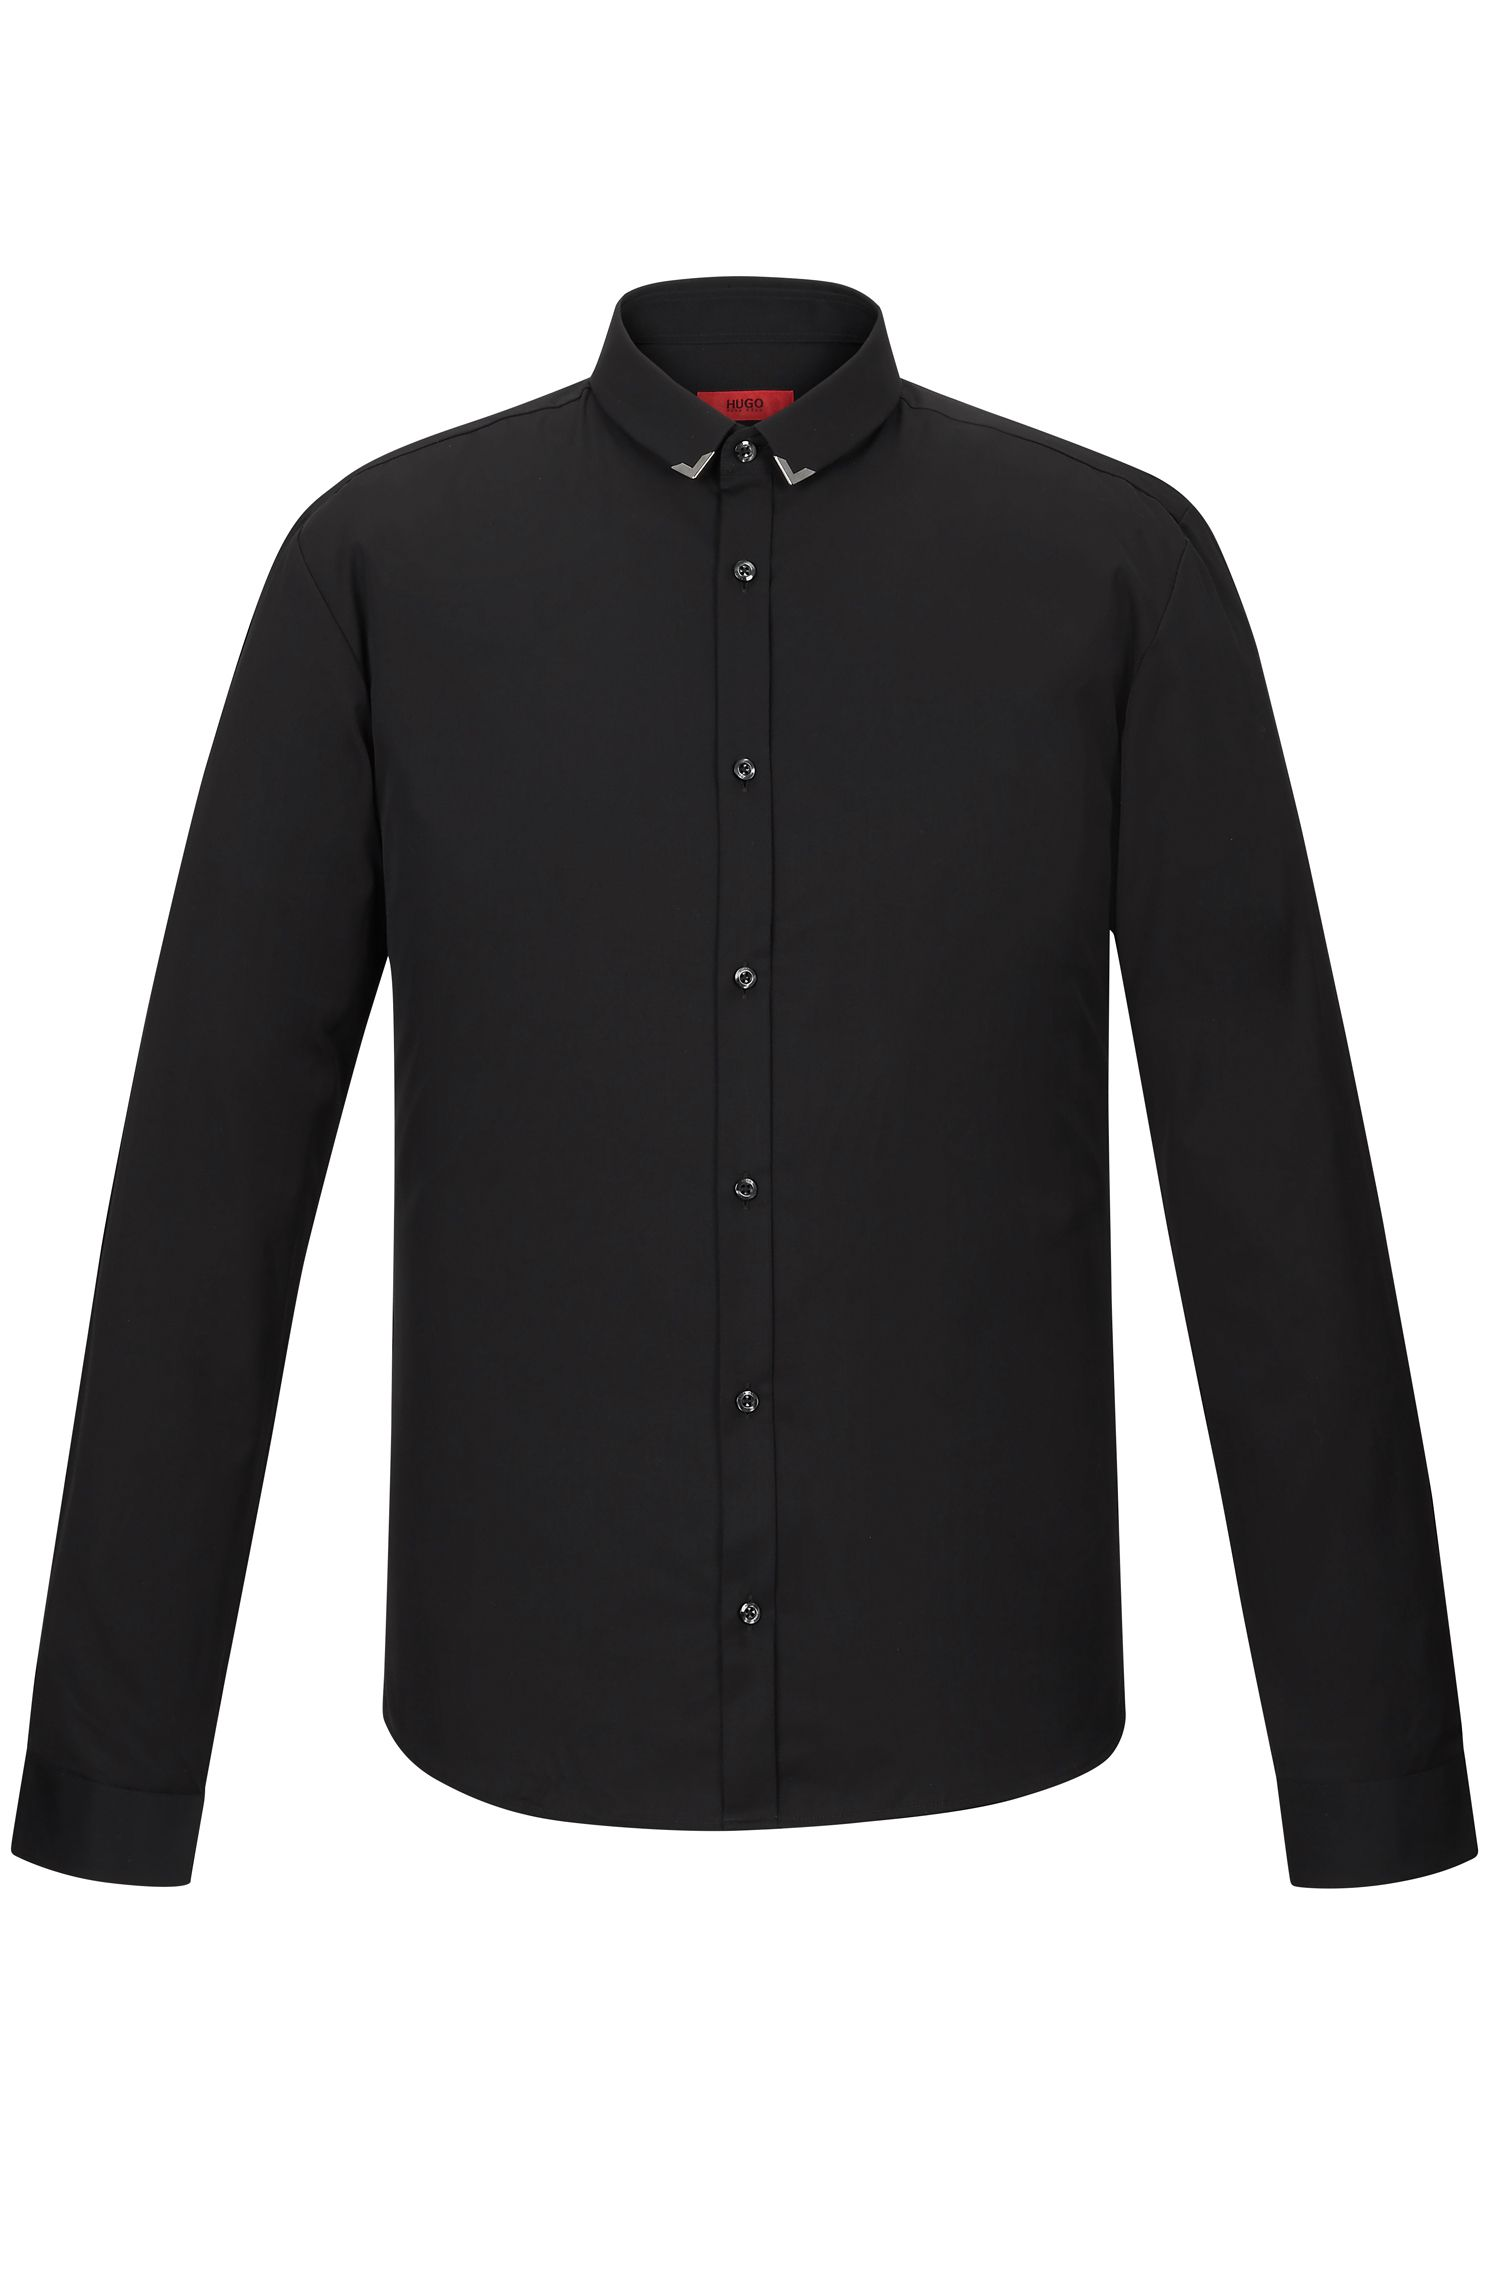 Cotton Poplin Button Down Shirt, Extra Slim Fit | Ero